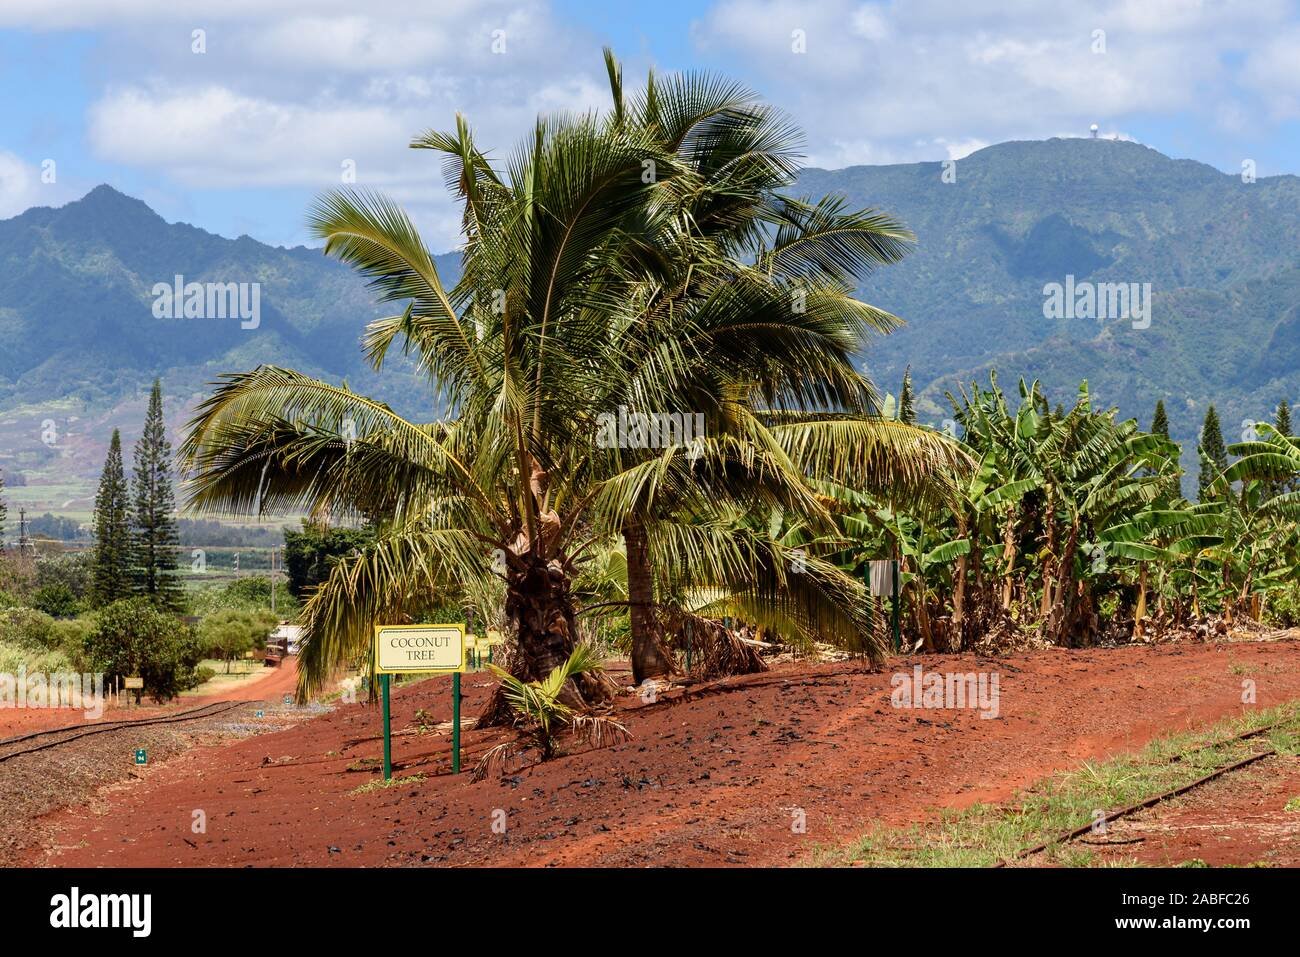 Coconut tree growing in a tropical plantation Stock Photo